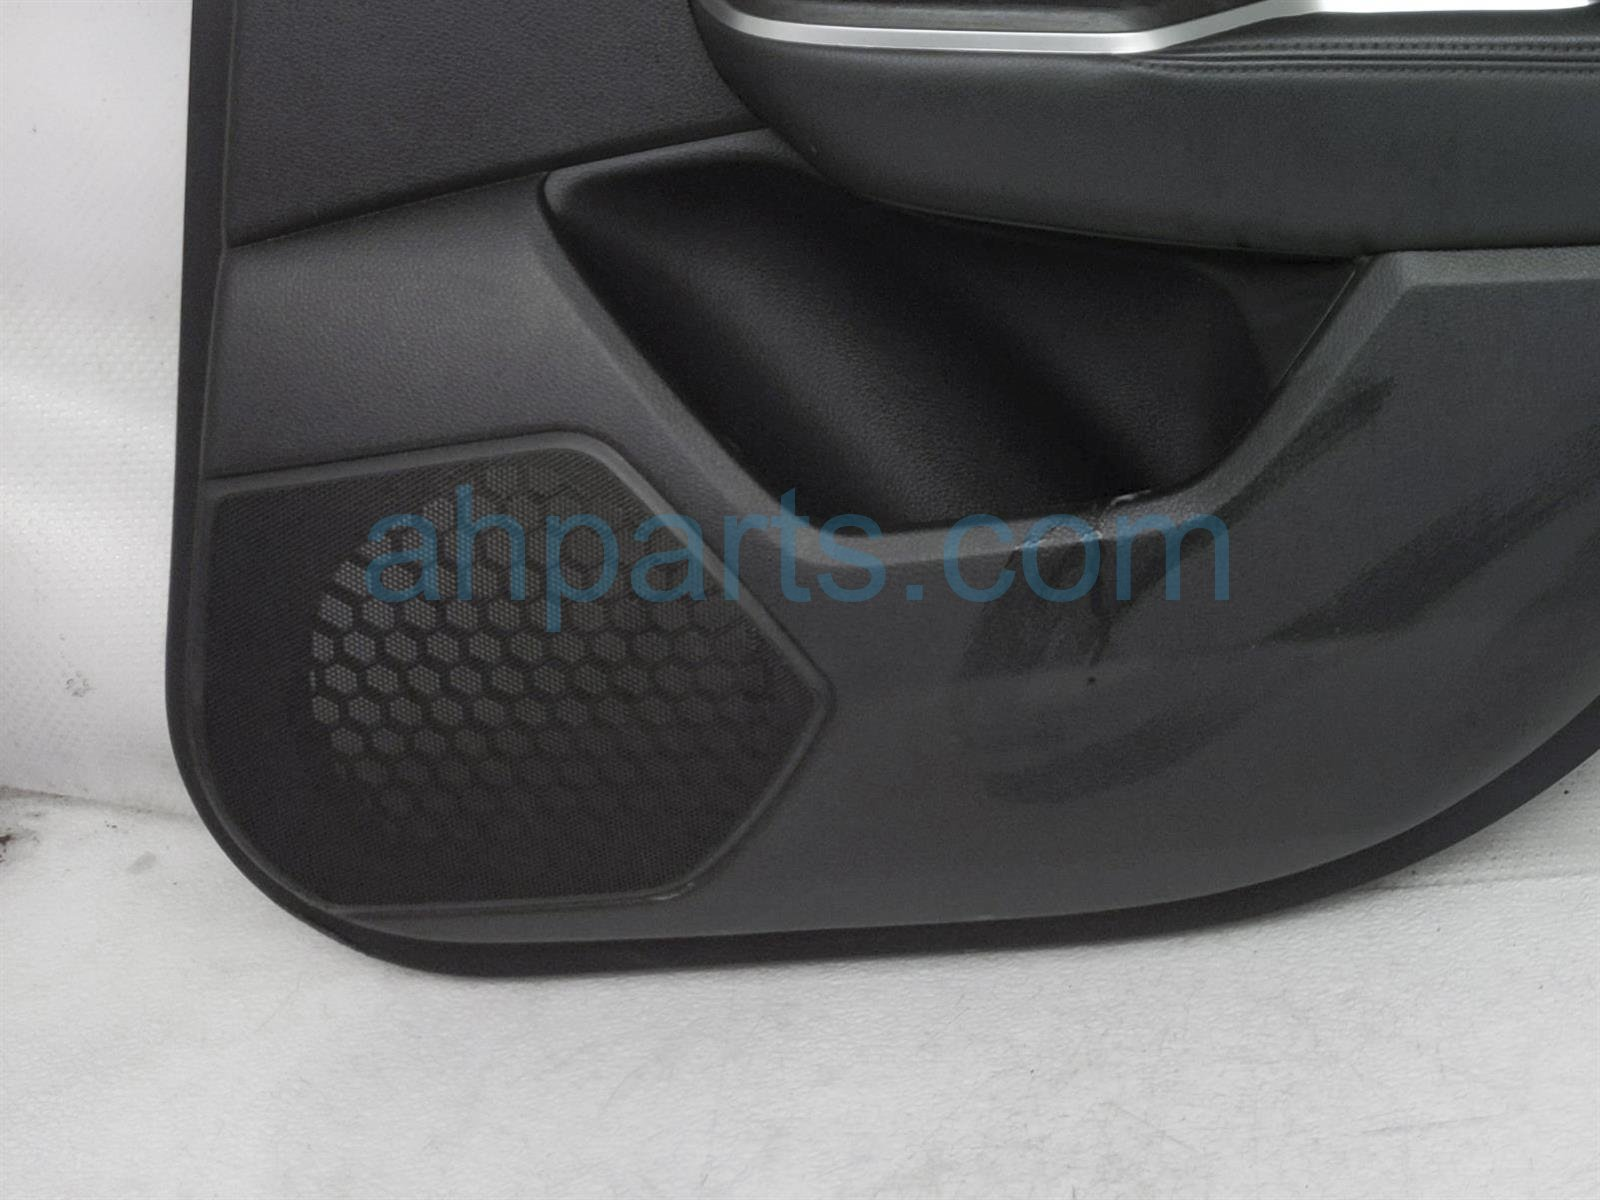 2018 Honda Clarity Trim / Liner Rear Passenger Interior Door Panel   Black 83701 TRW A21ZB Replacement